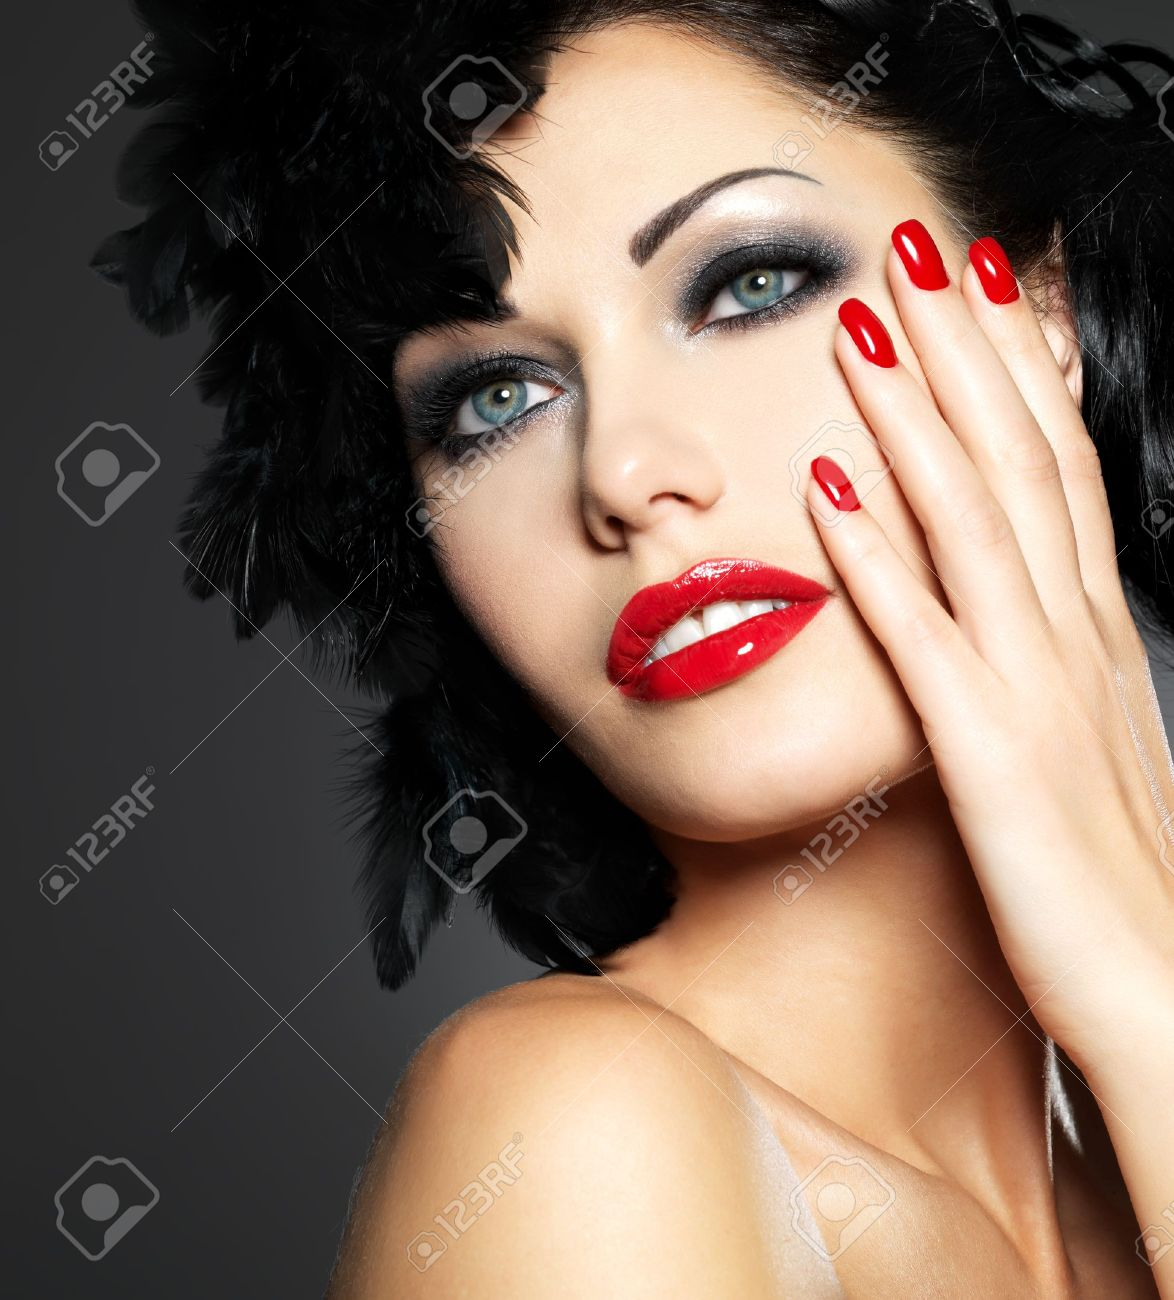 Beautiful fashion woman with red nails, creative hairstyle and makeup - Model posing in studio Stock Photo - 16732157